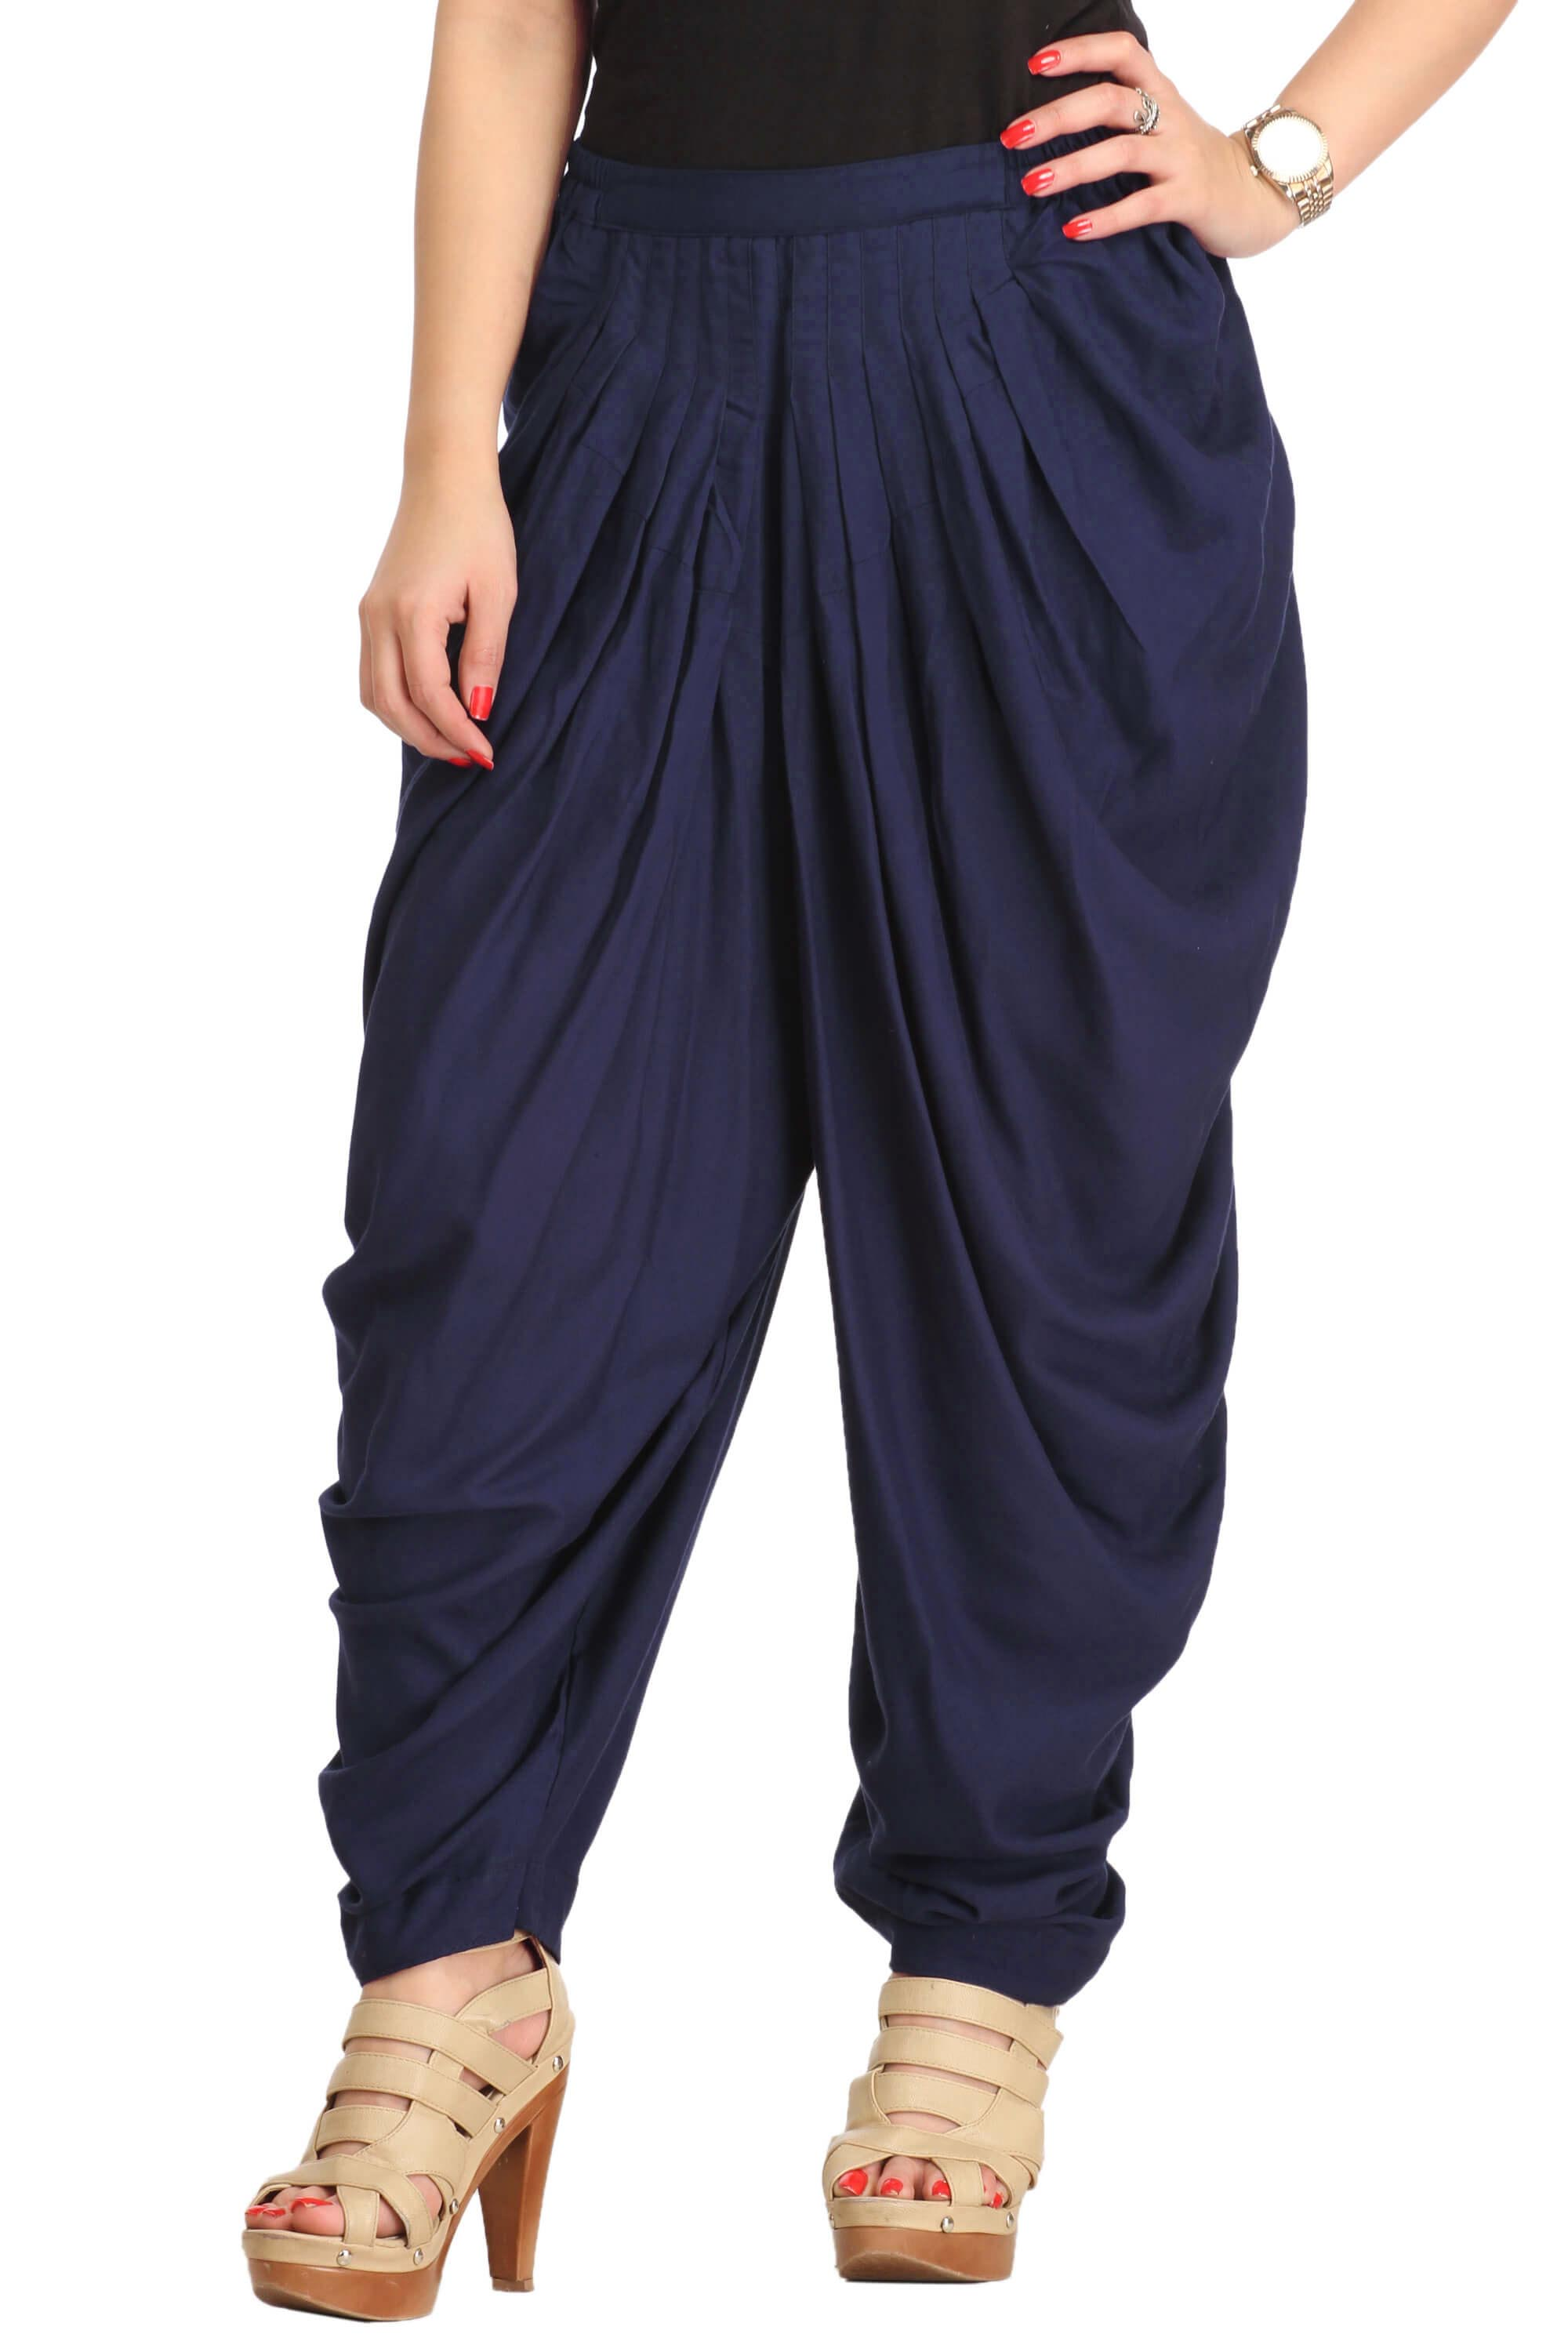 Shop eBay for great deals on Blue Harem Harem Pants Pants for Women. You'll find new or used products in Blue Harem Harem Pants Pants for Women on eBay. Free shipping on selected items.